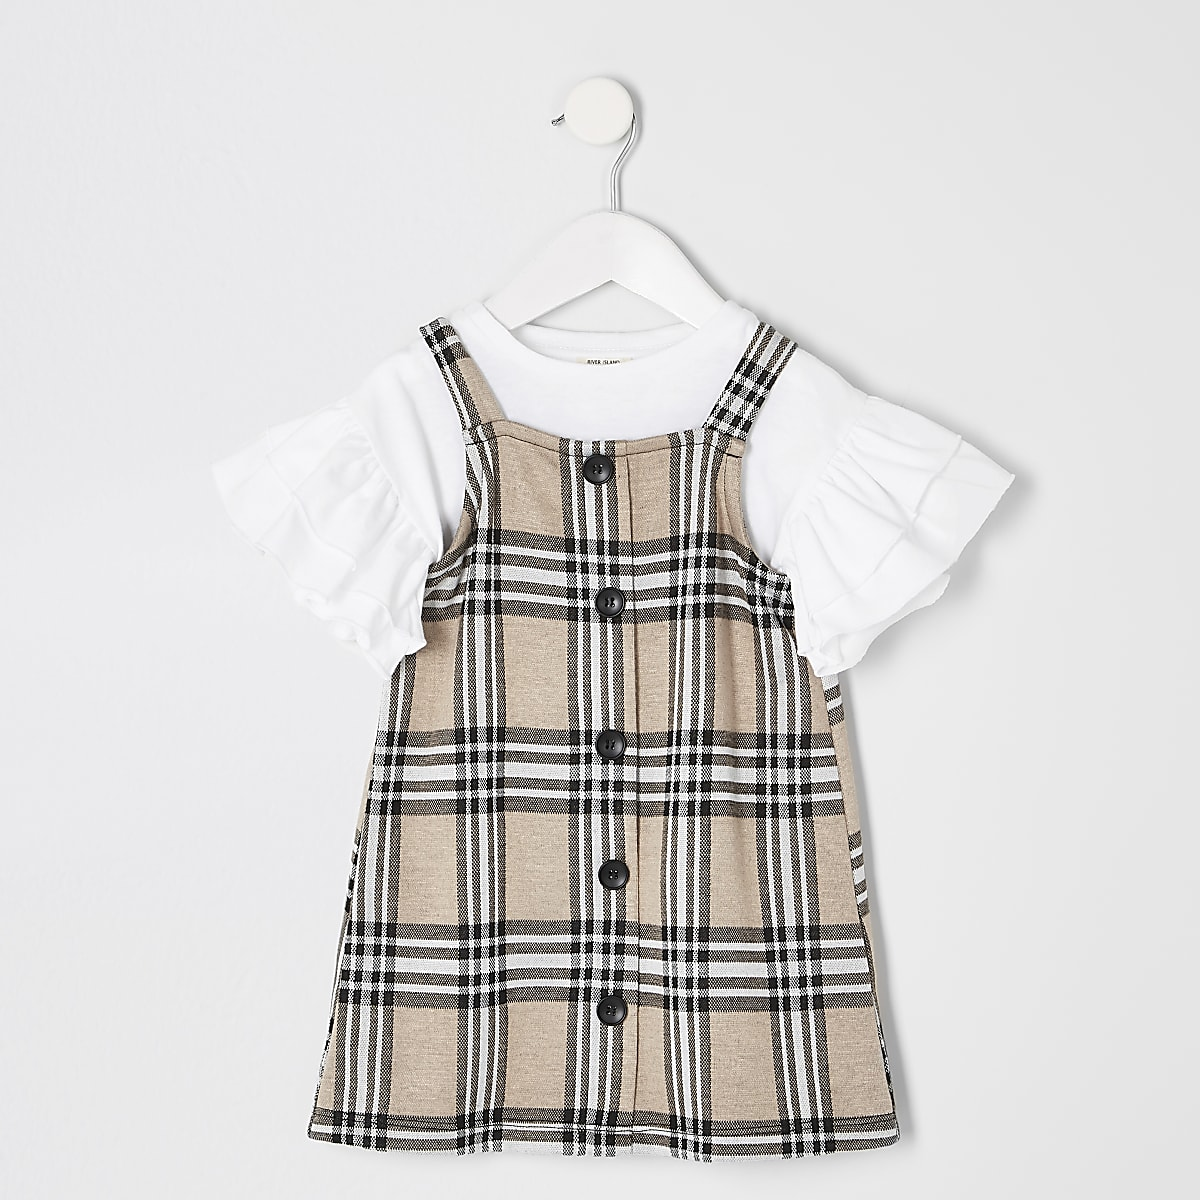 9a14d8ab0cf Mini girls brown check pinafore outfit - Baby Girls Dresses - Mini Girls -  girls